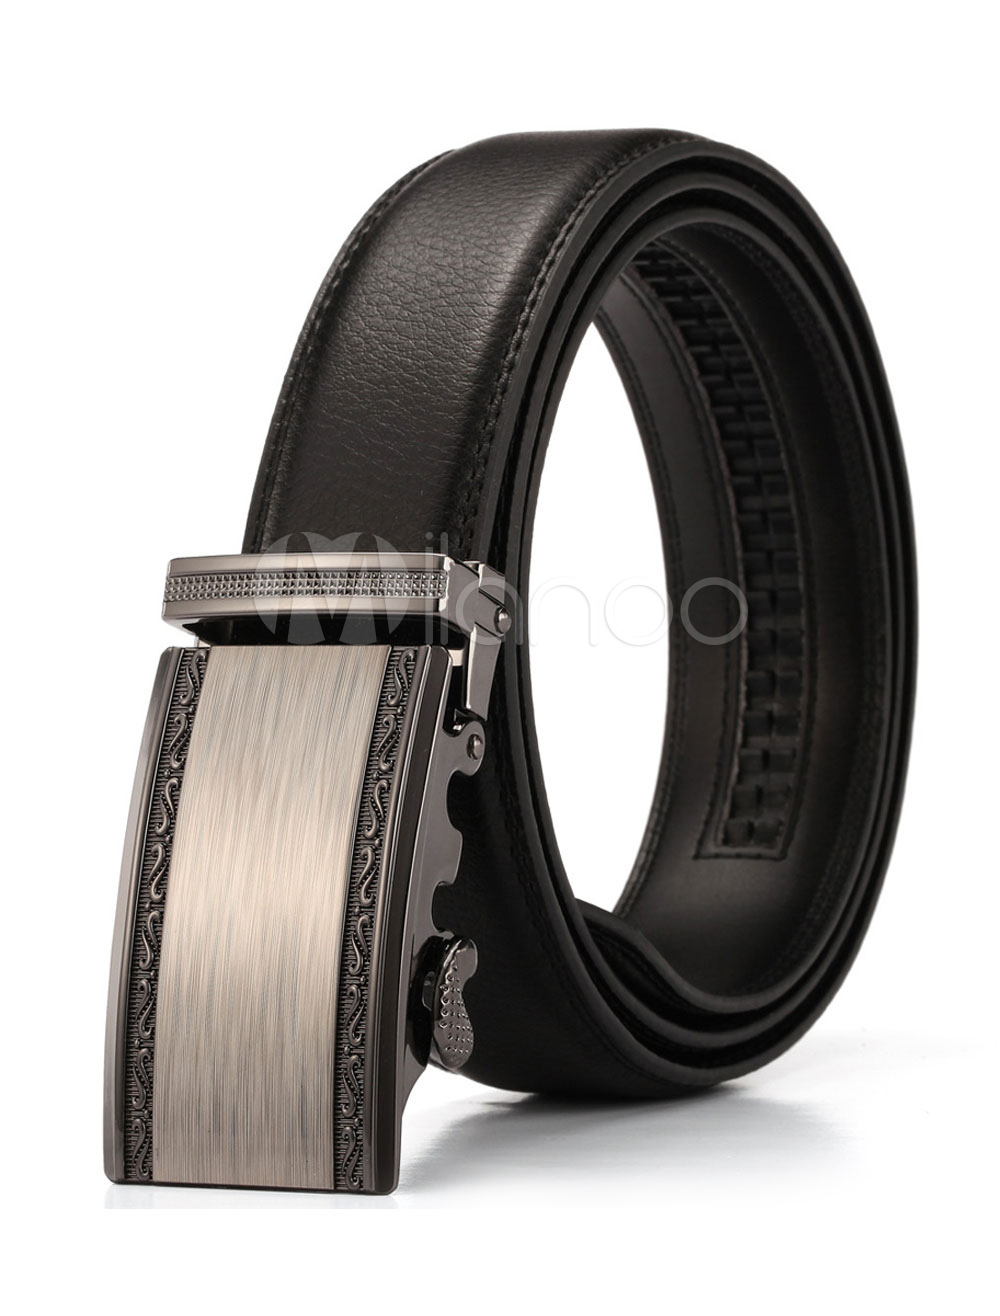 Black Men's Belt Genuine Leather Metal Detail Business Waistband thumbnail